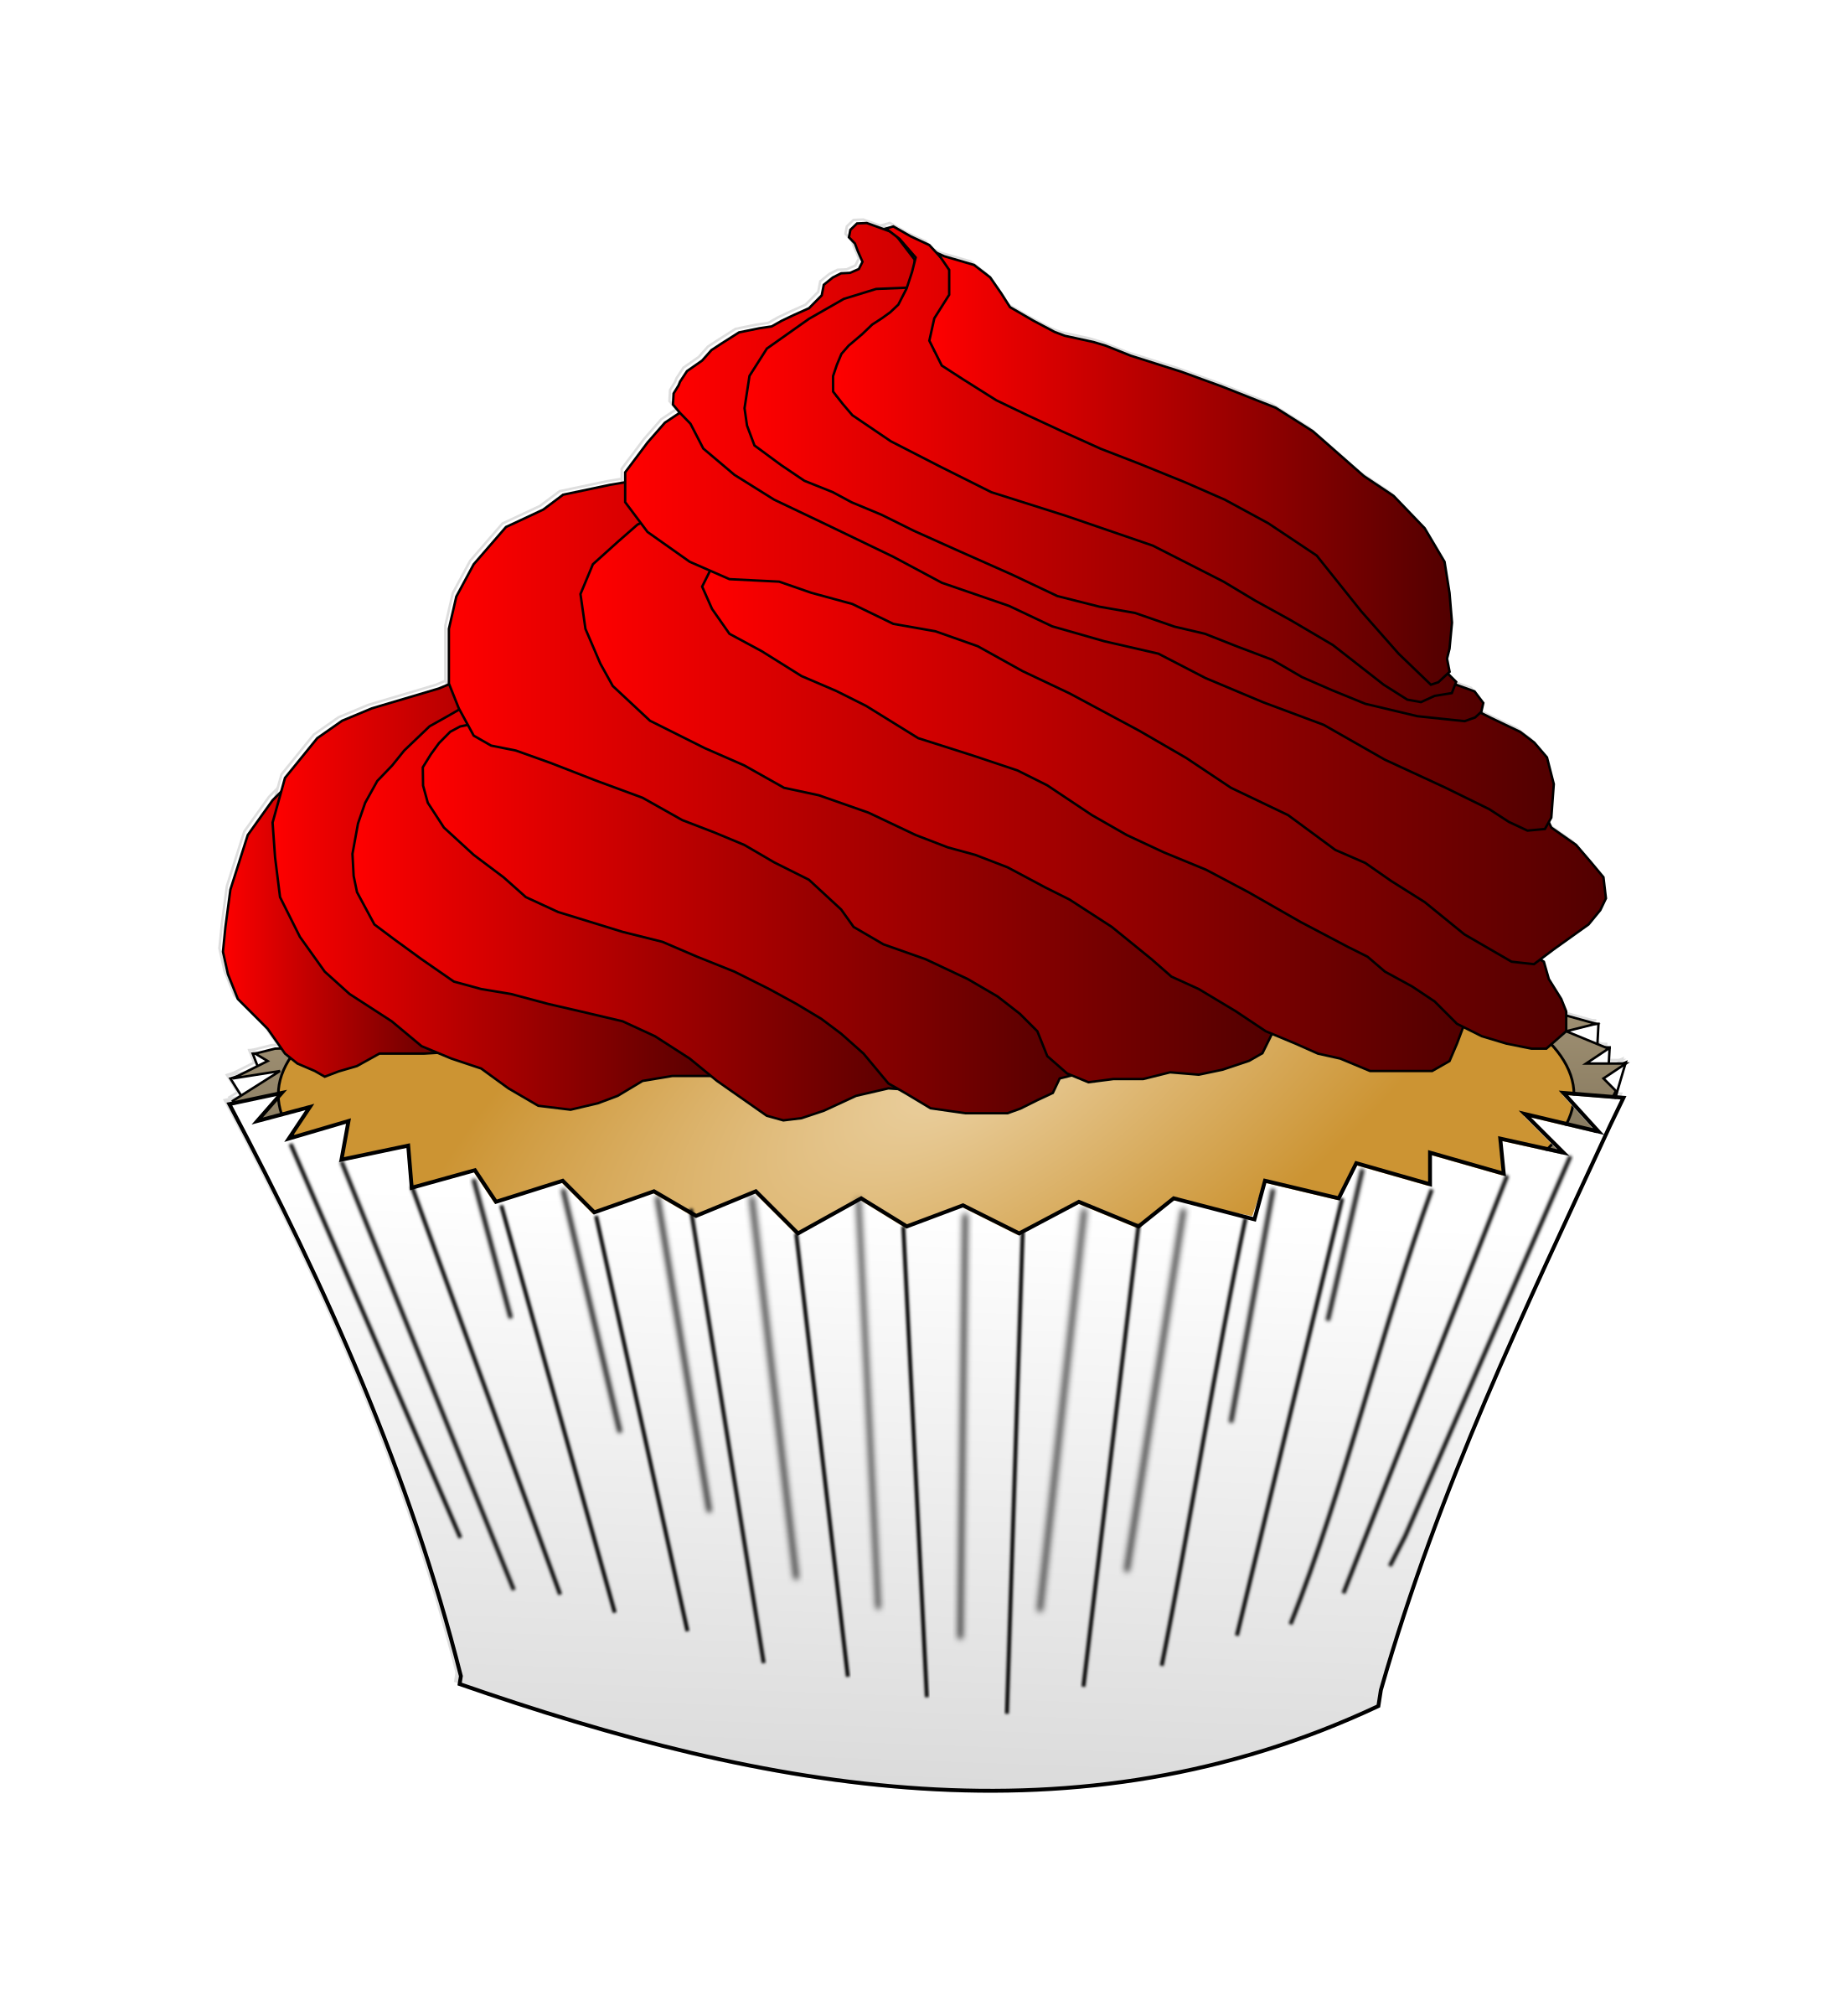 Icing clipart plain cupcake Cupcake Frosting Frosting Red Cupcake